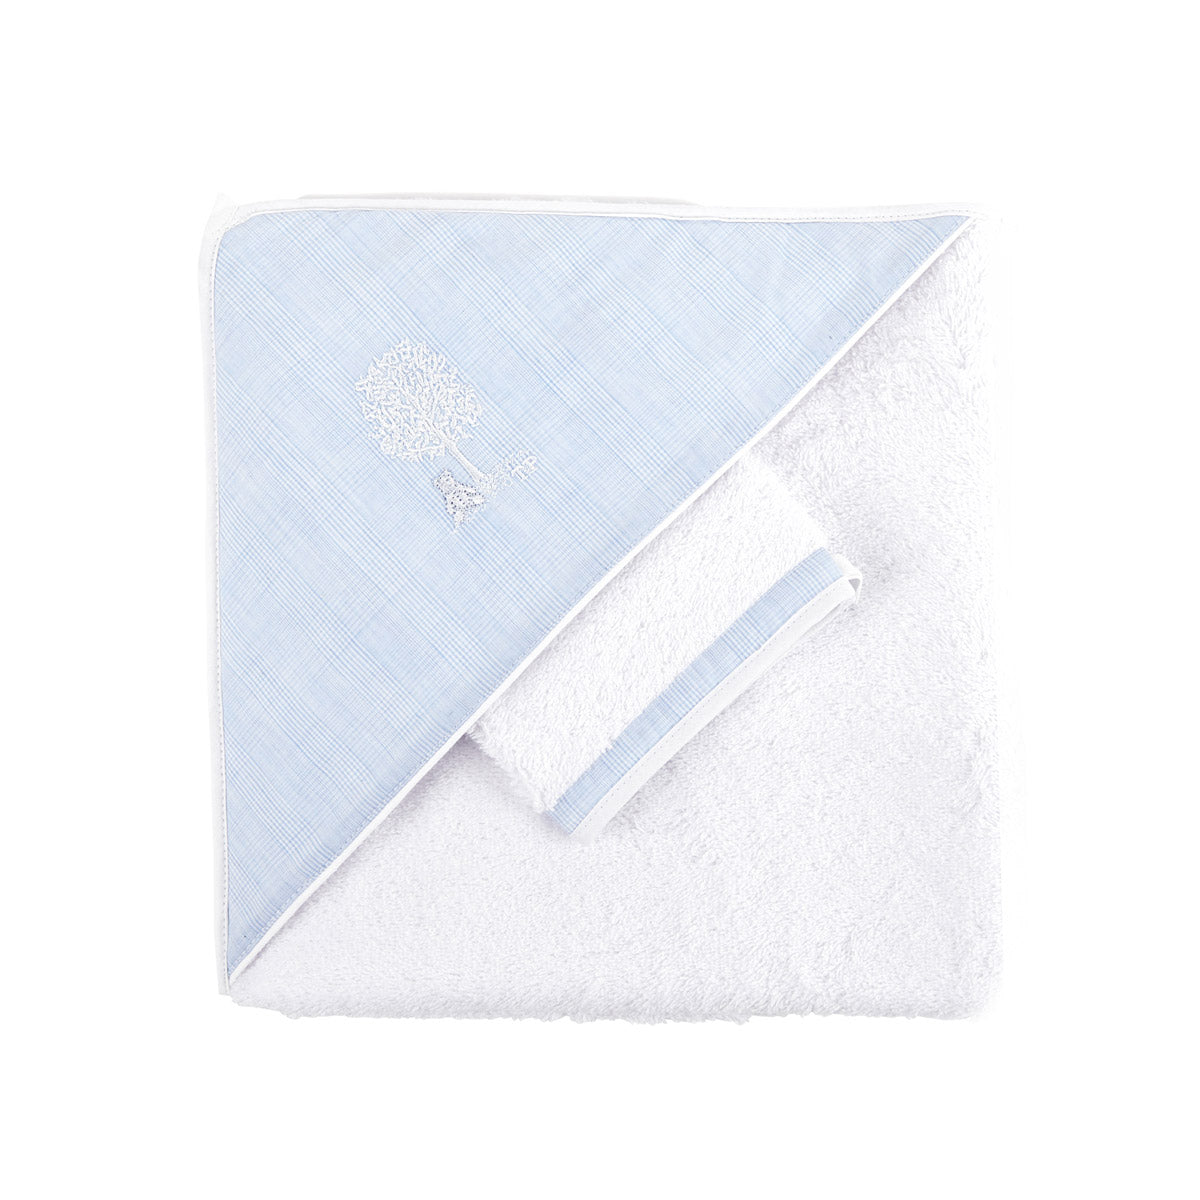 Theophile & Patachou the Hooded Towel and the Matching Glove - Sweet Blue